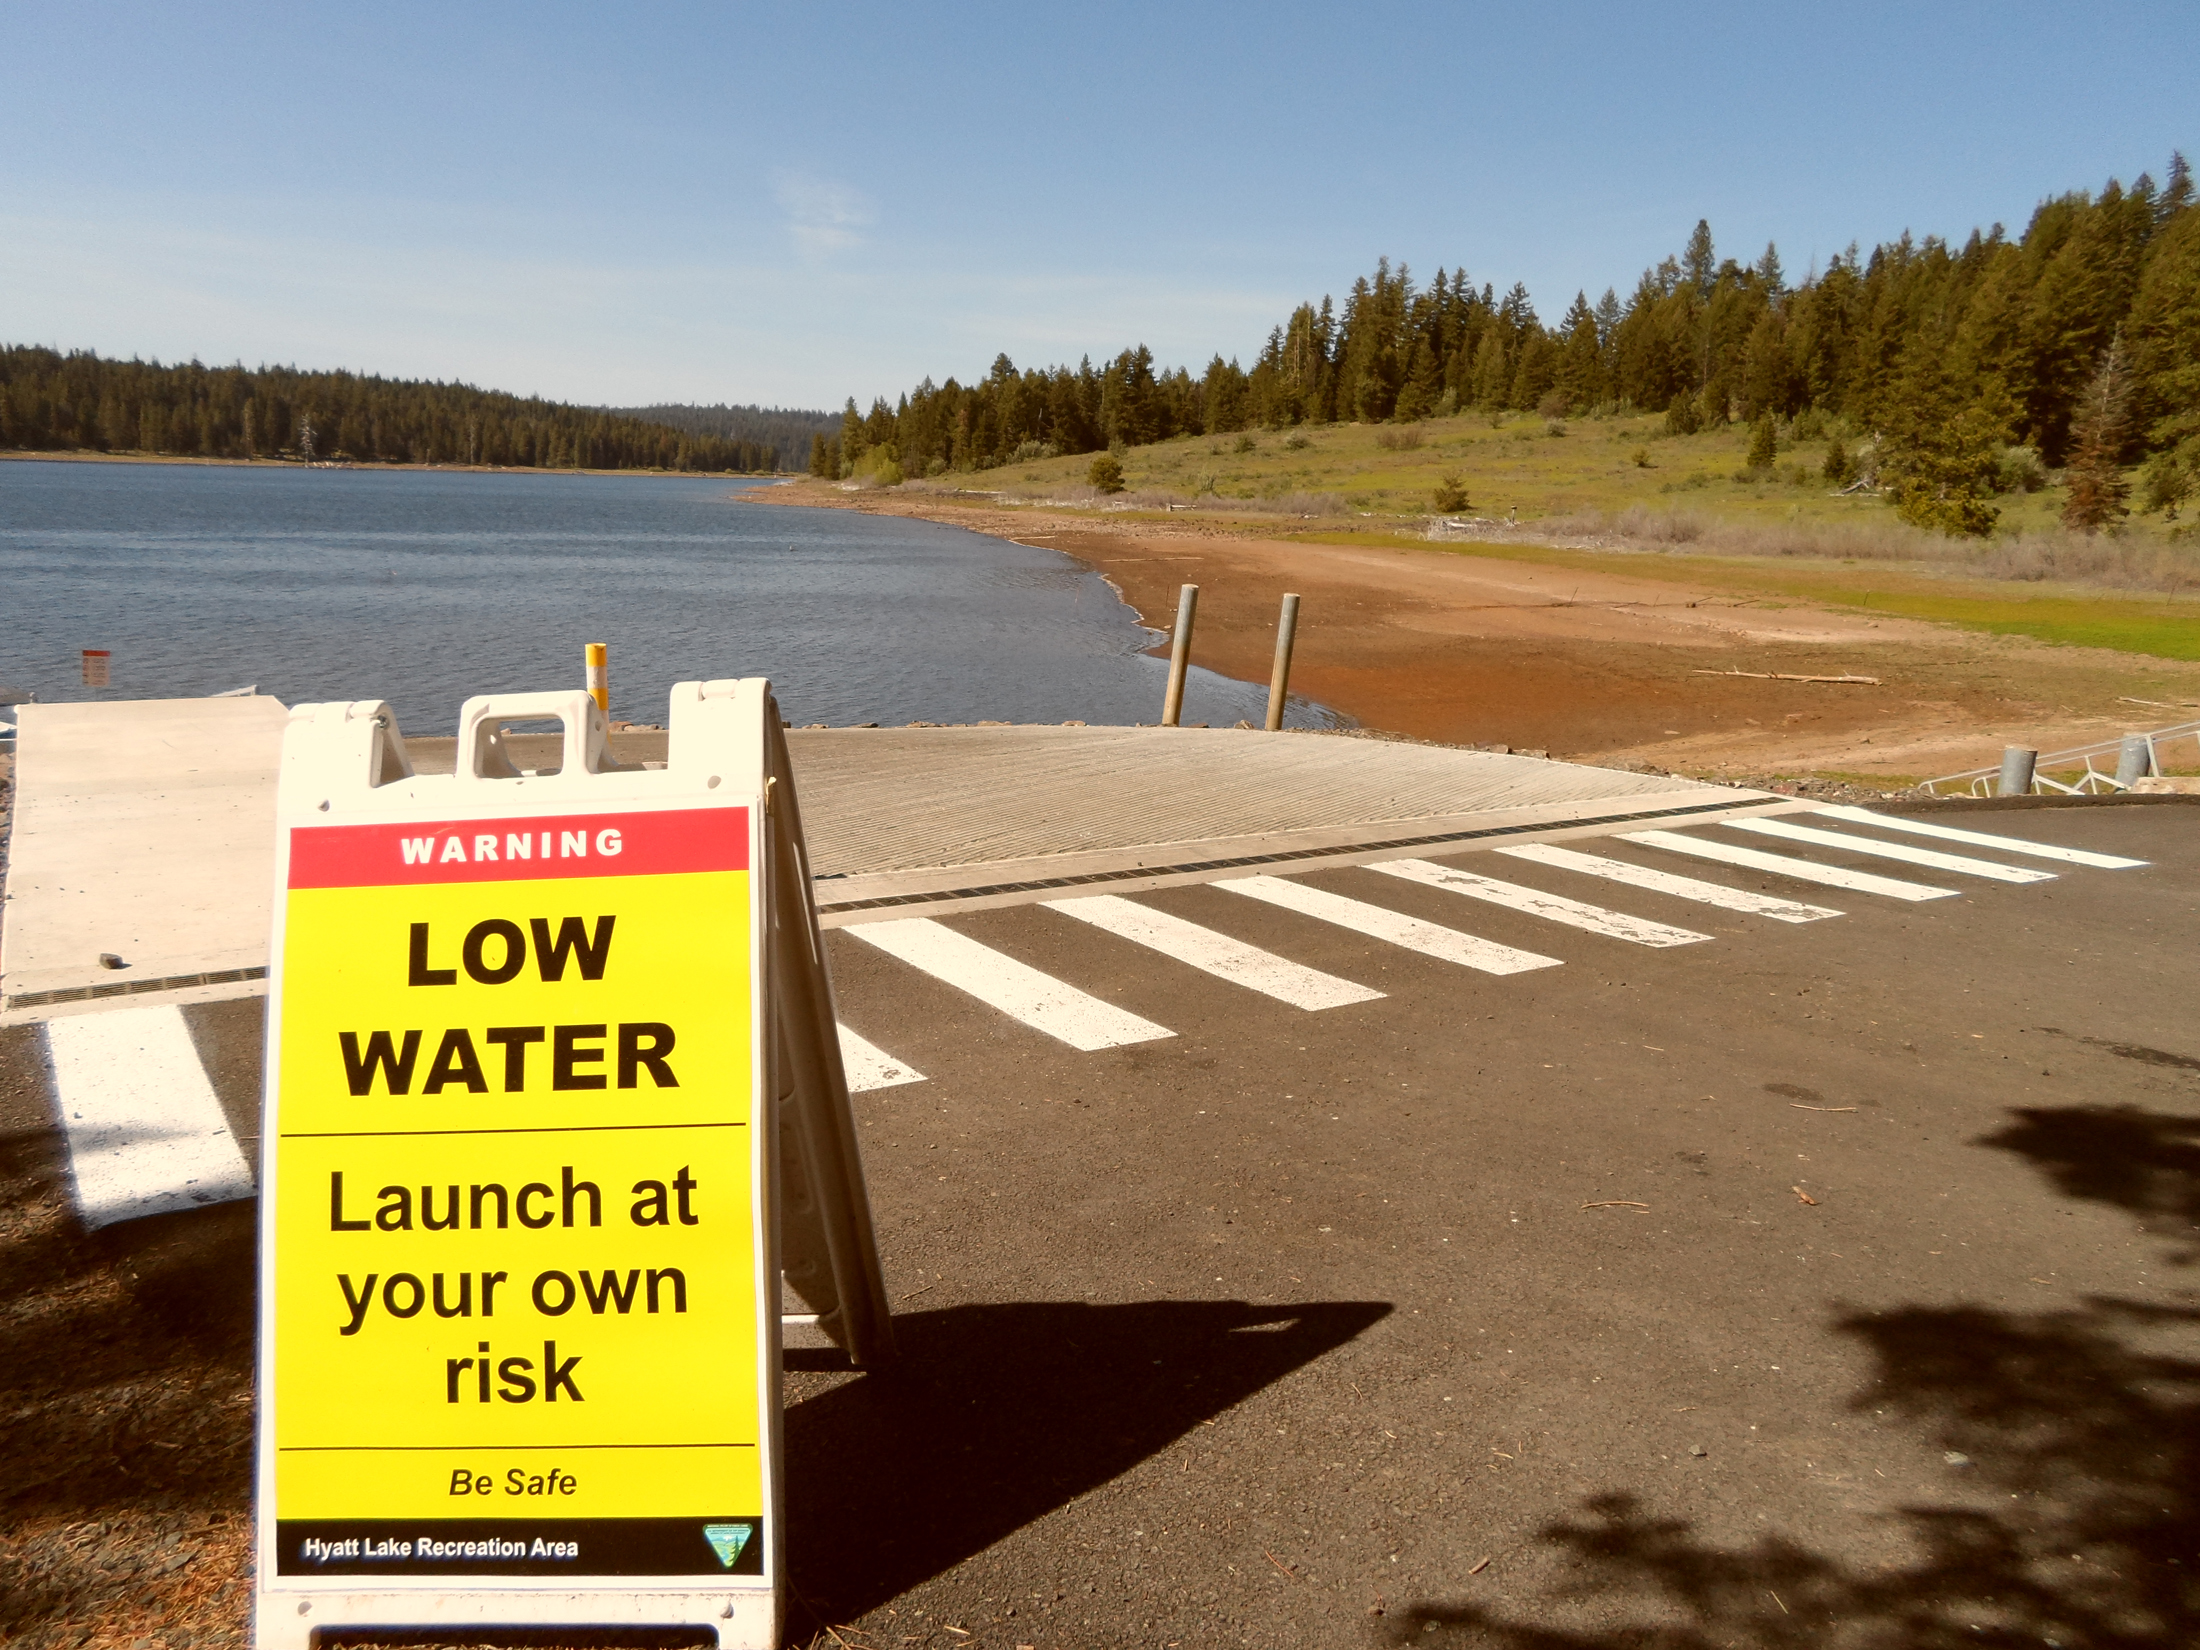 Low Water Warning sign at Hyatt Lake in early summer 2014